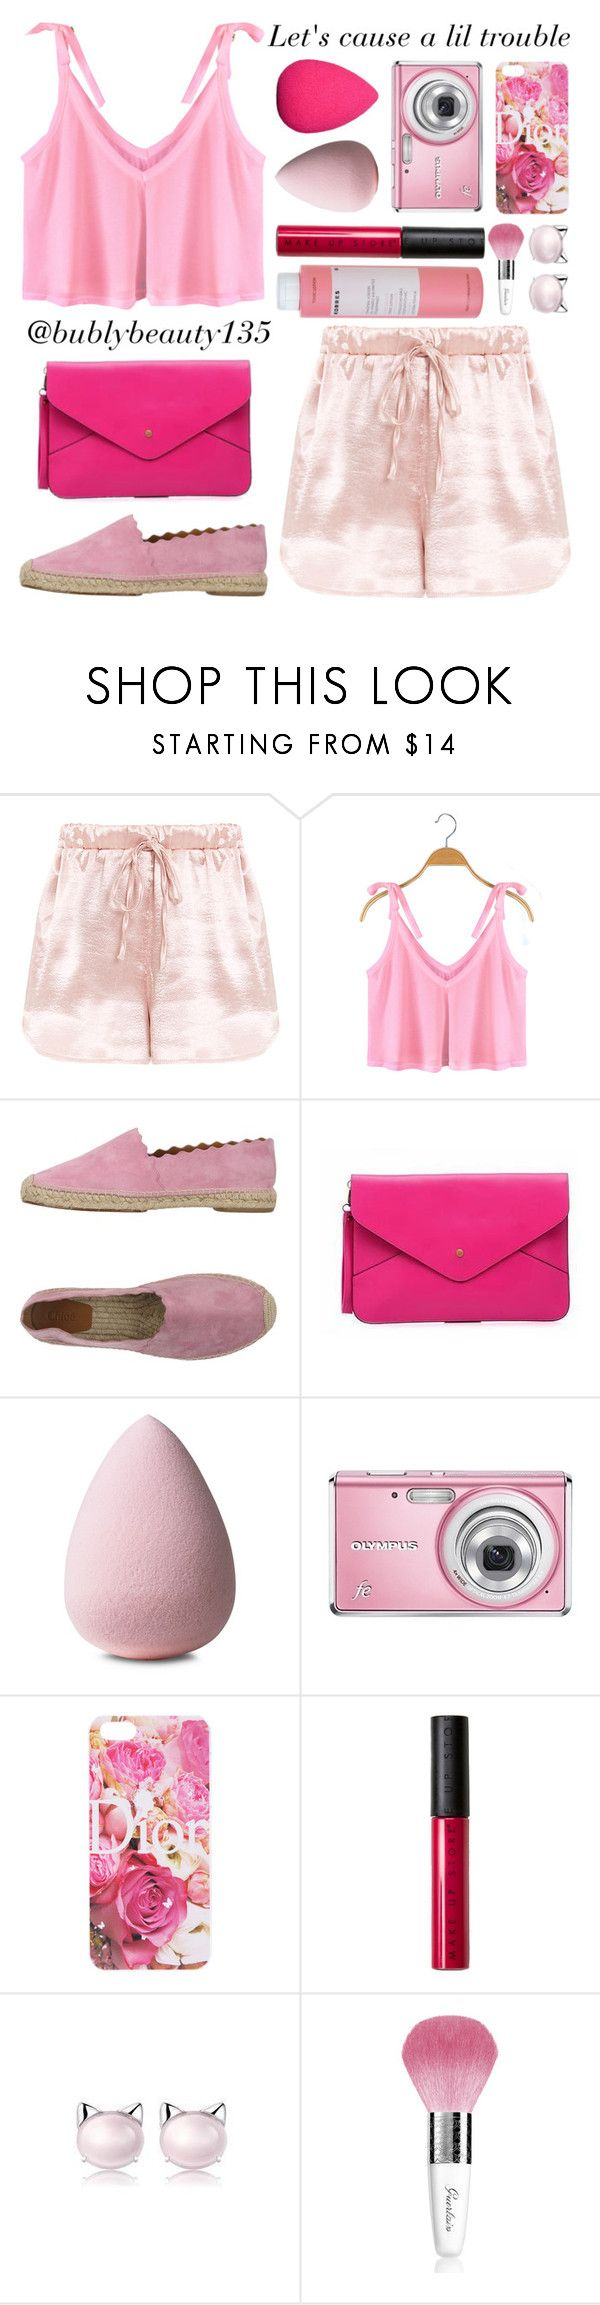 """Let's cause a lil trouble"" by bubblybeauty135 ❤ liked on Polyvore featuring Chloé, QeQ, MAKE UP STORE, Belec, Guerlain and Korres"